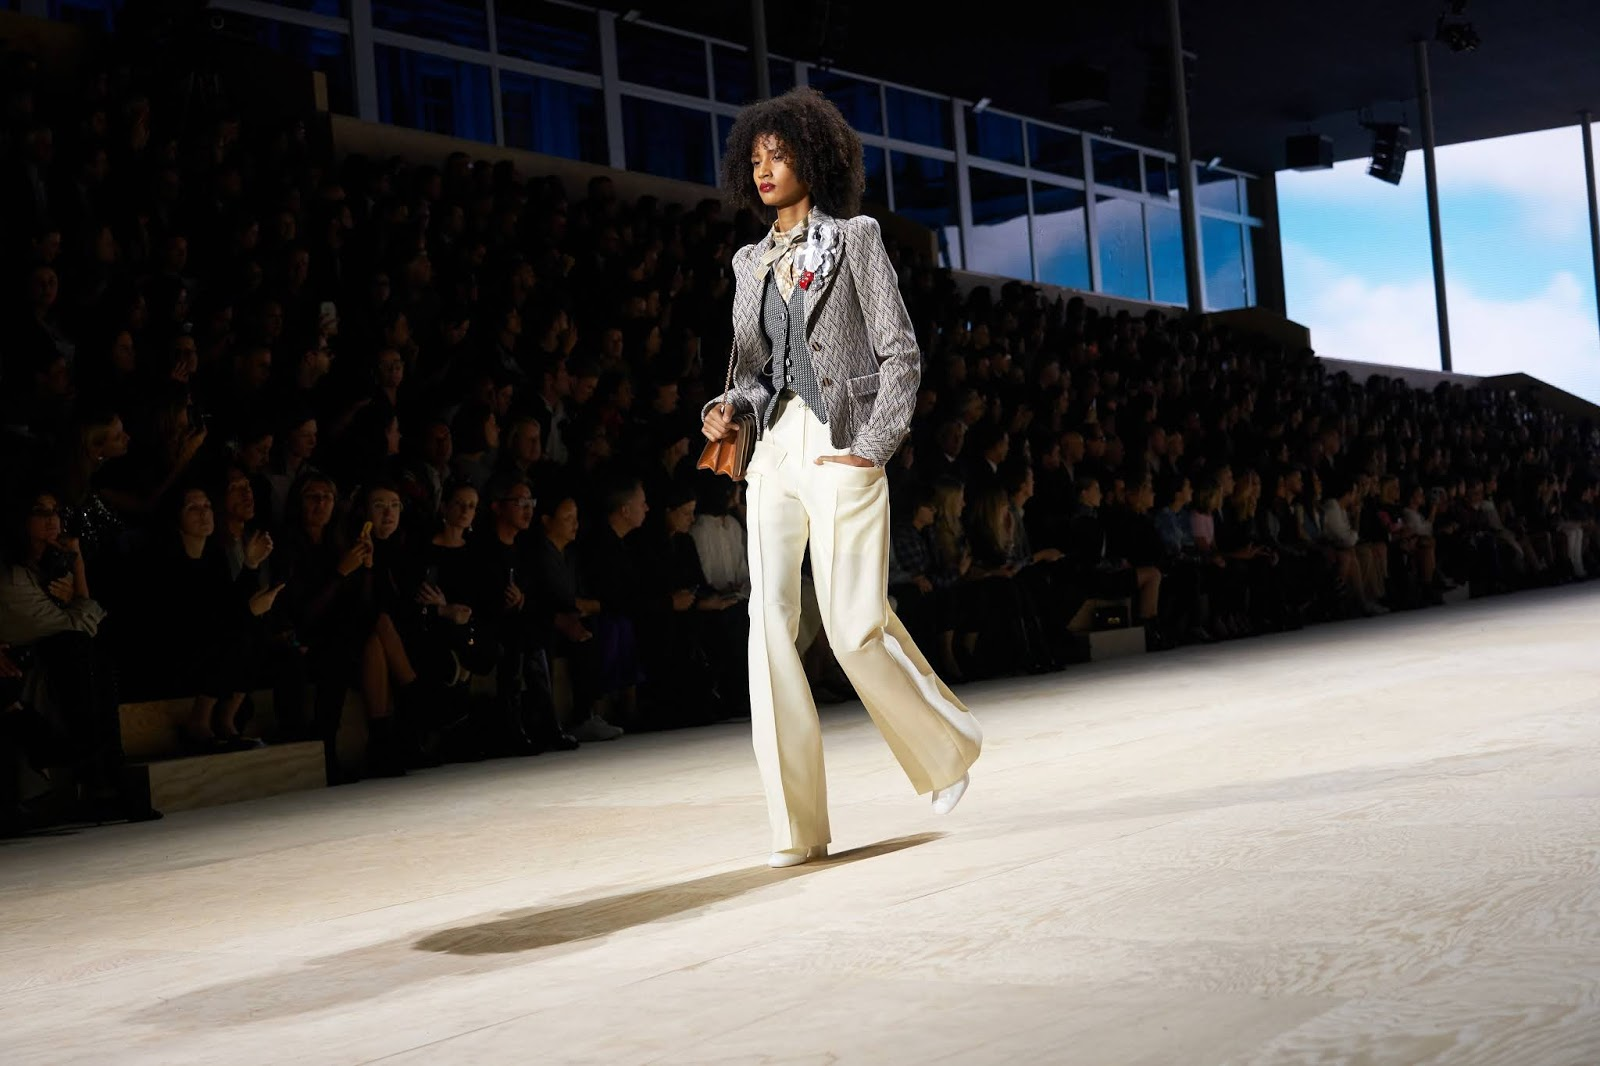 MIXING IT UP ON THE RUNWAY: LOUIS VUITTON